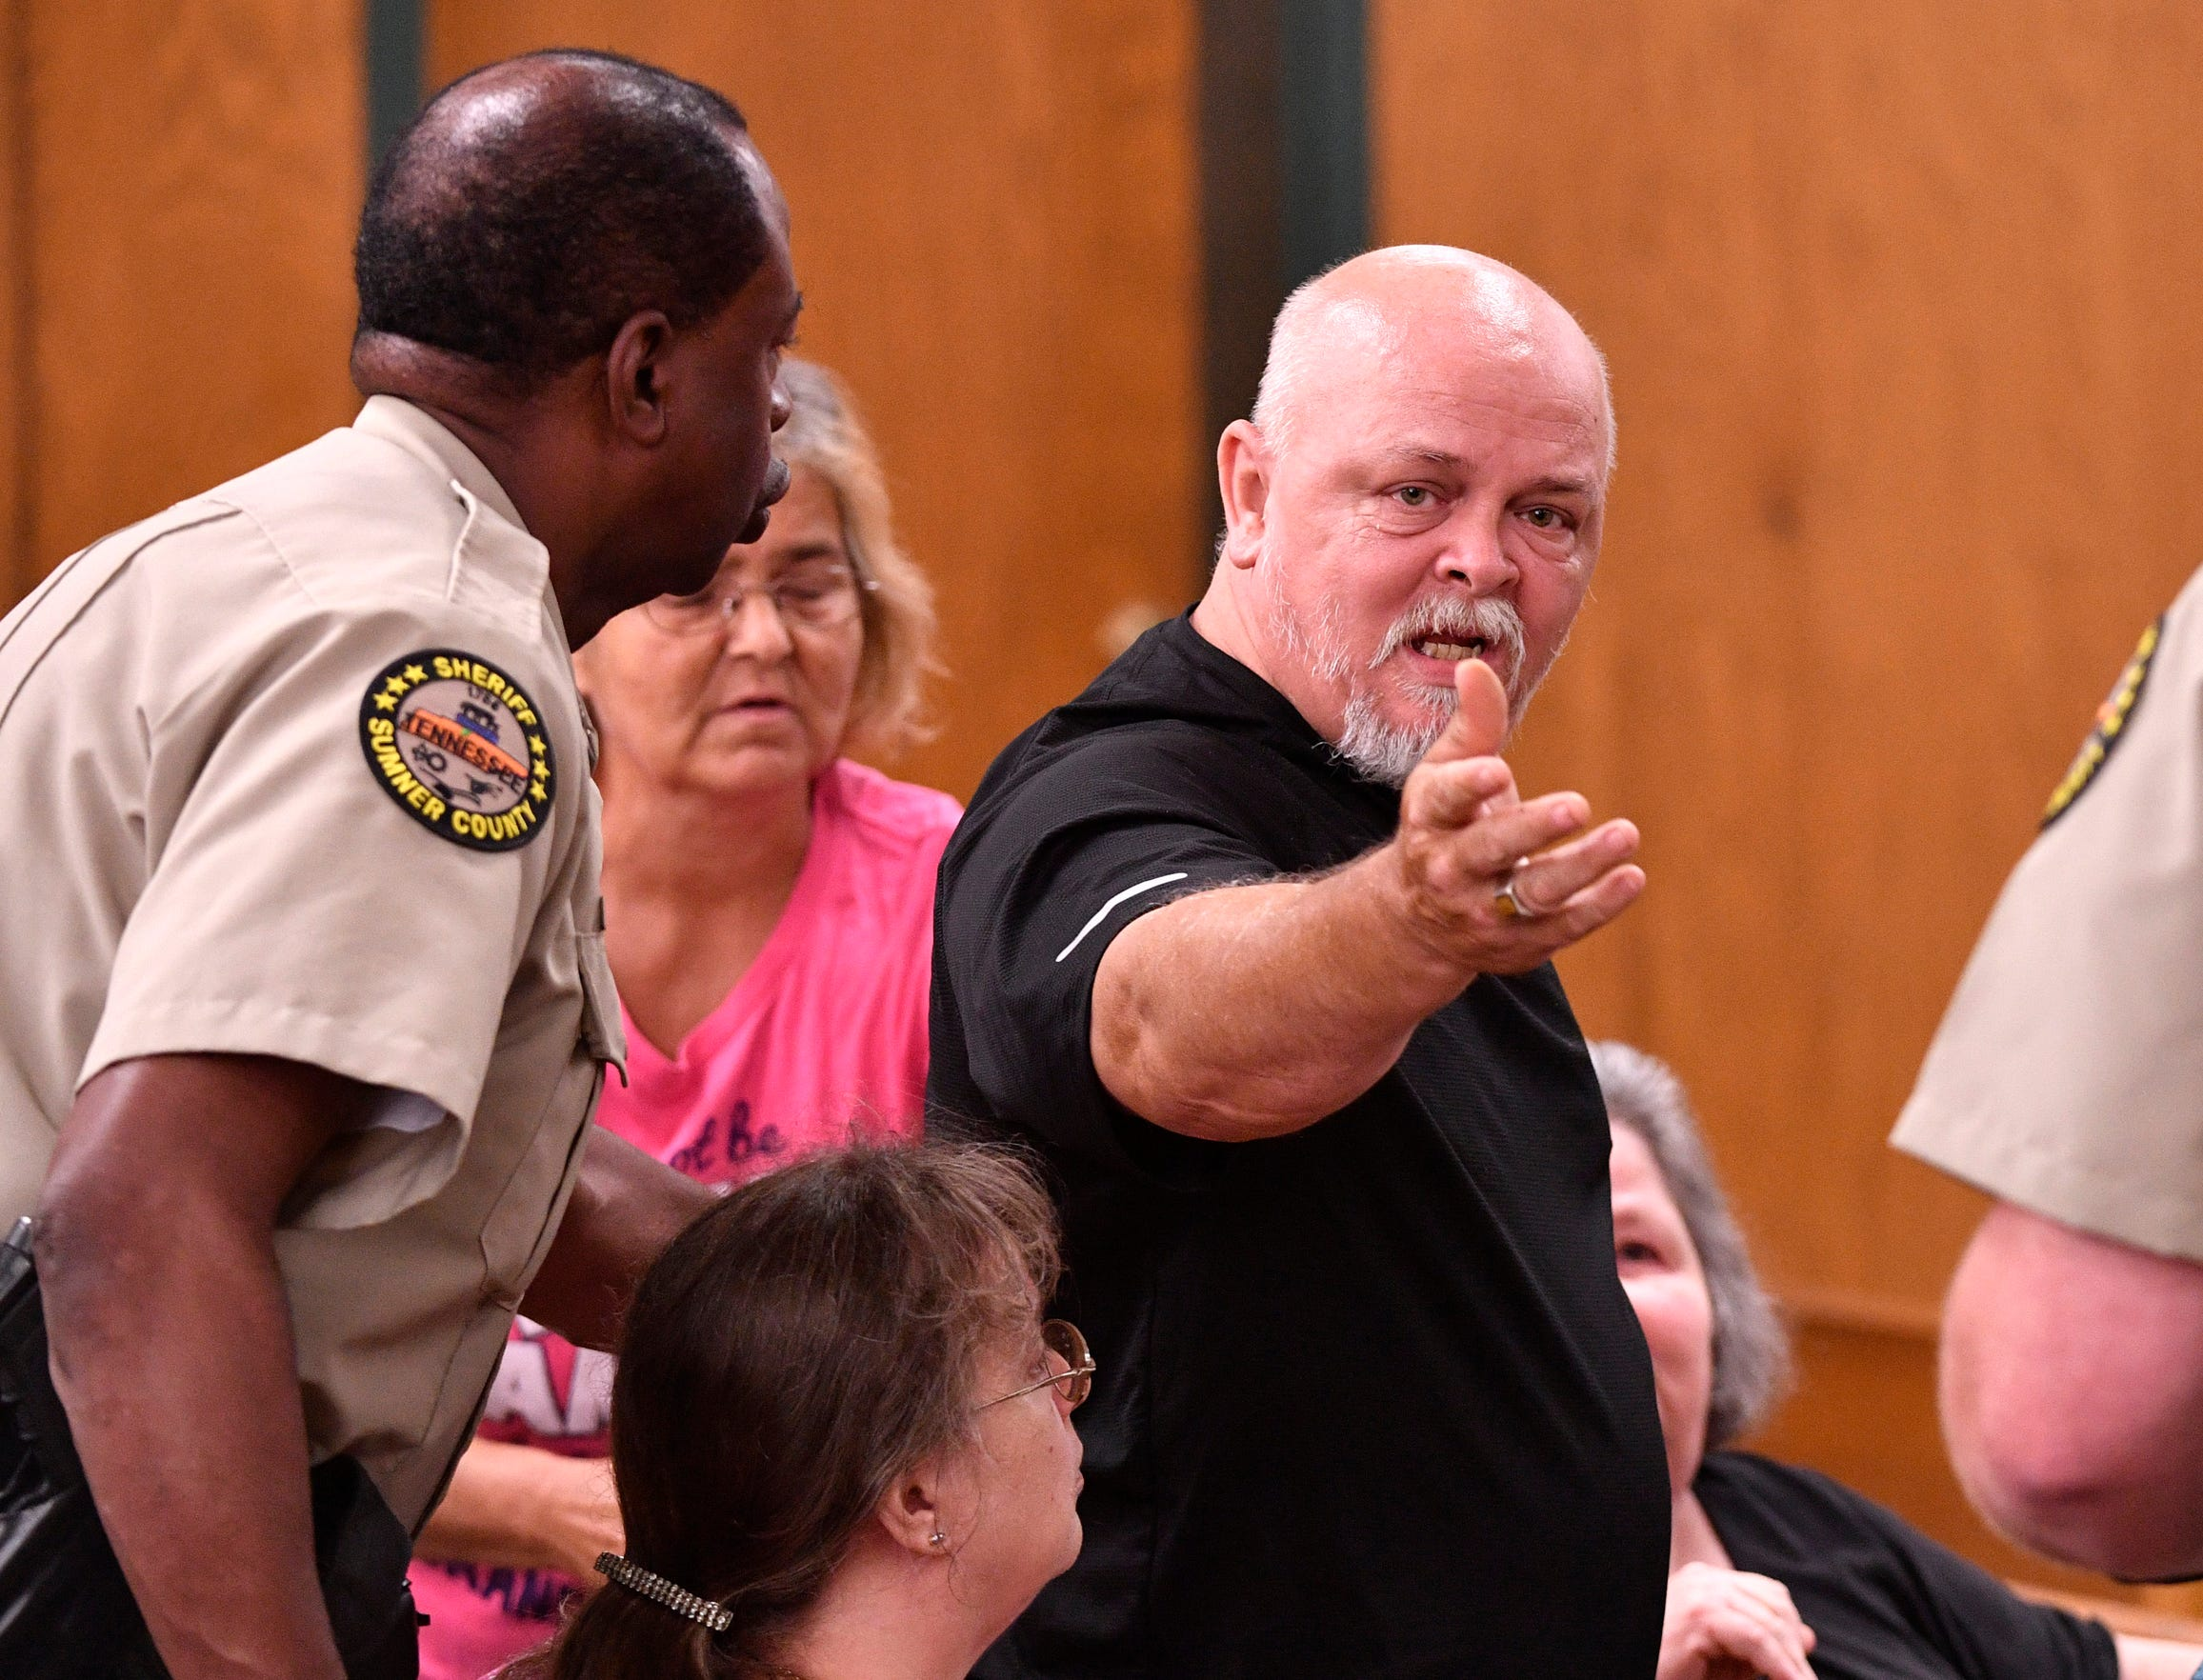 Steve McGlothlin is escorted out of court after an outburst while listening to testimony about the death of his 12-year-old niece during Michael Cummins' hearing Wednesday, May 29, 2019, in Gallatin.